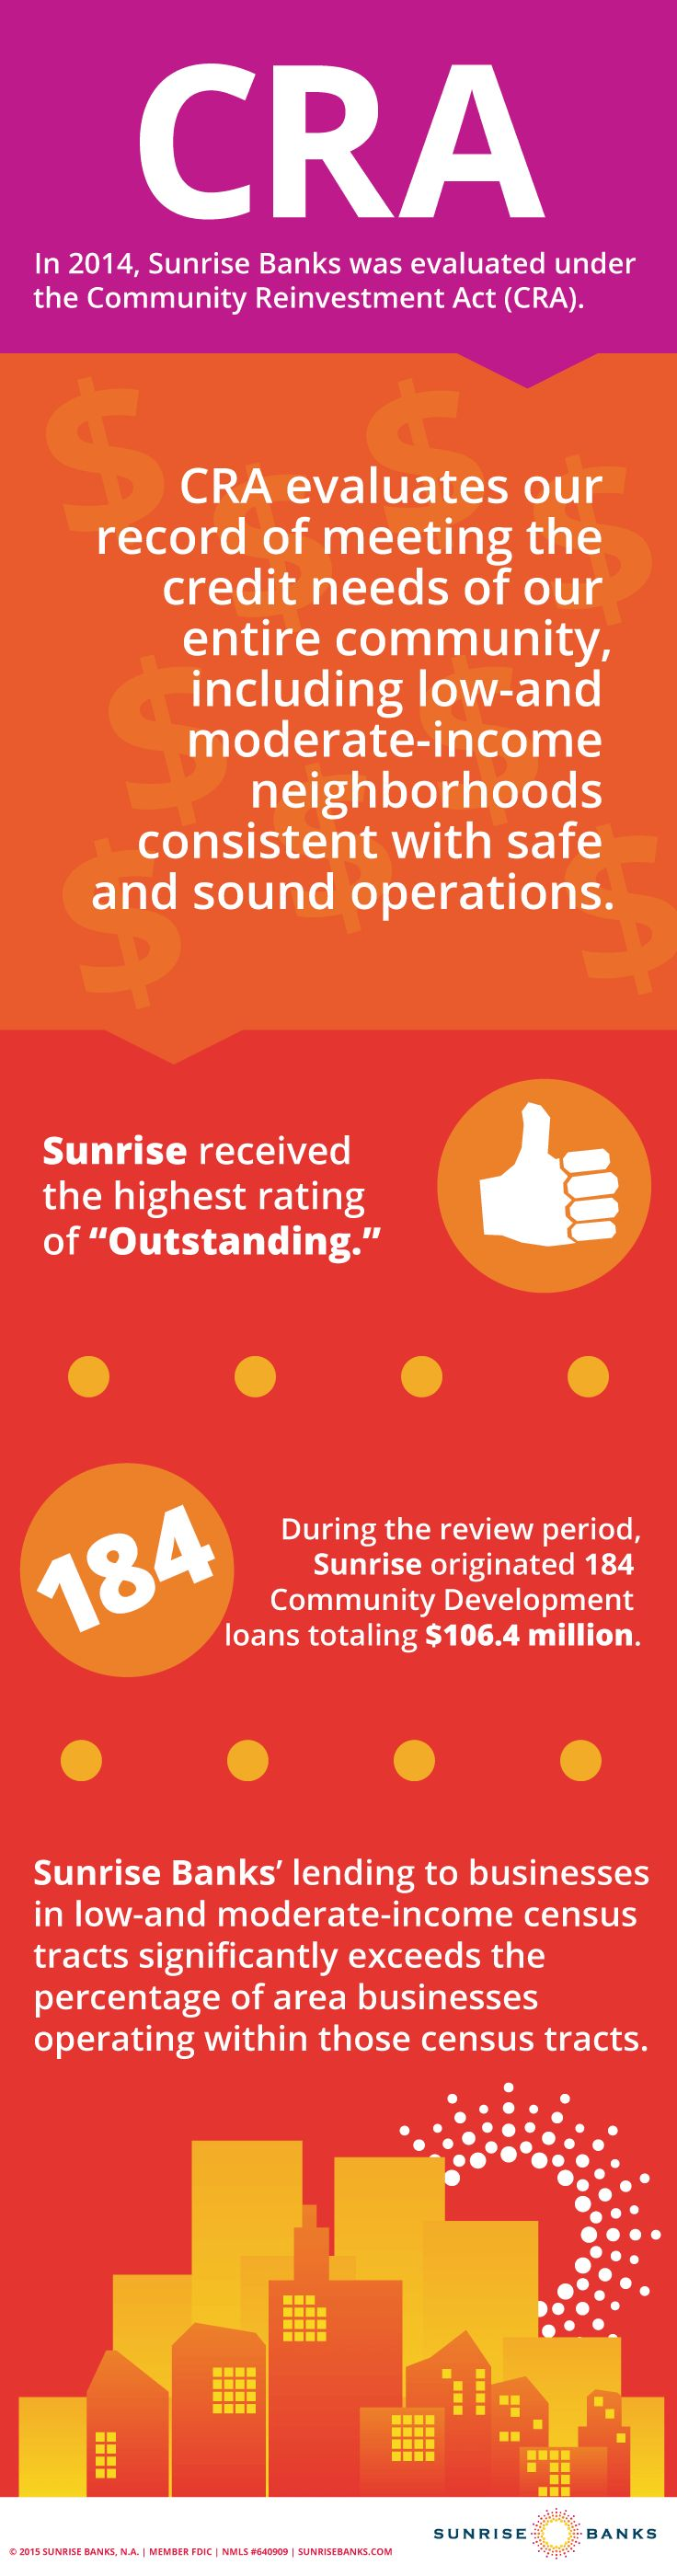 "In 2014, Sunrise received an ""Outstanding"" rating on our Community Reinvestment Act (CRA) regulator examination, demonstrating our dedication to meeting the credit needs of our entire community, including low-and-moderate-income neighborhoods."